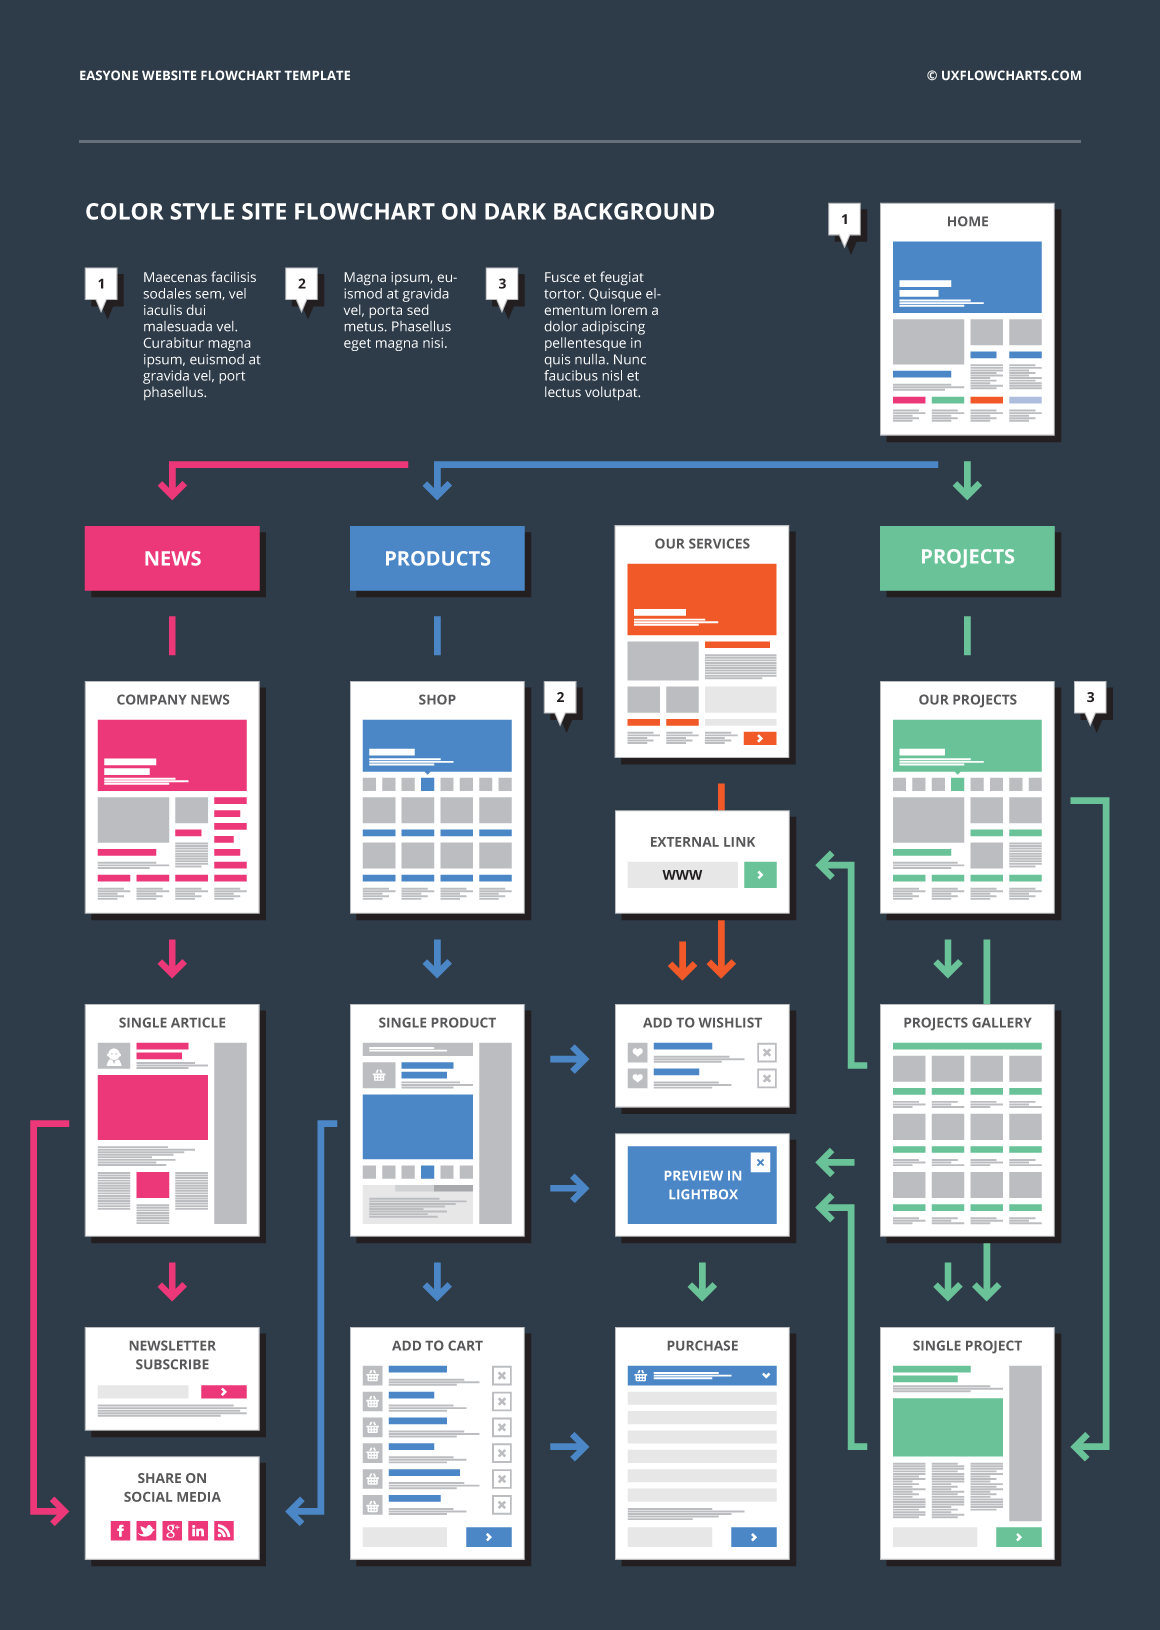 Ux flowcharts ux cards and useful digital tools for ux planning easyone website flowchart template nvjuhfo Choice Image